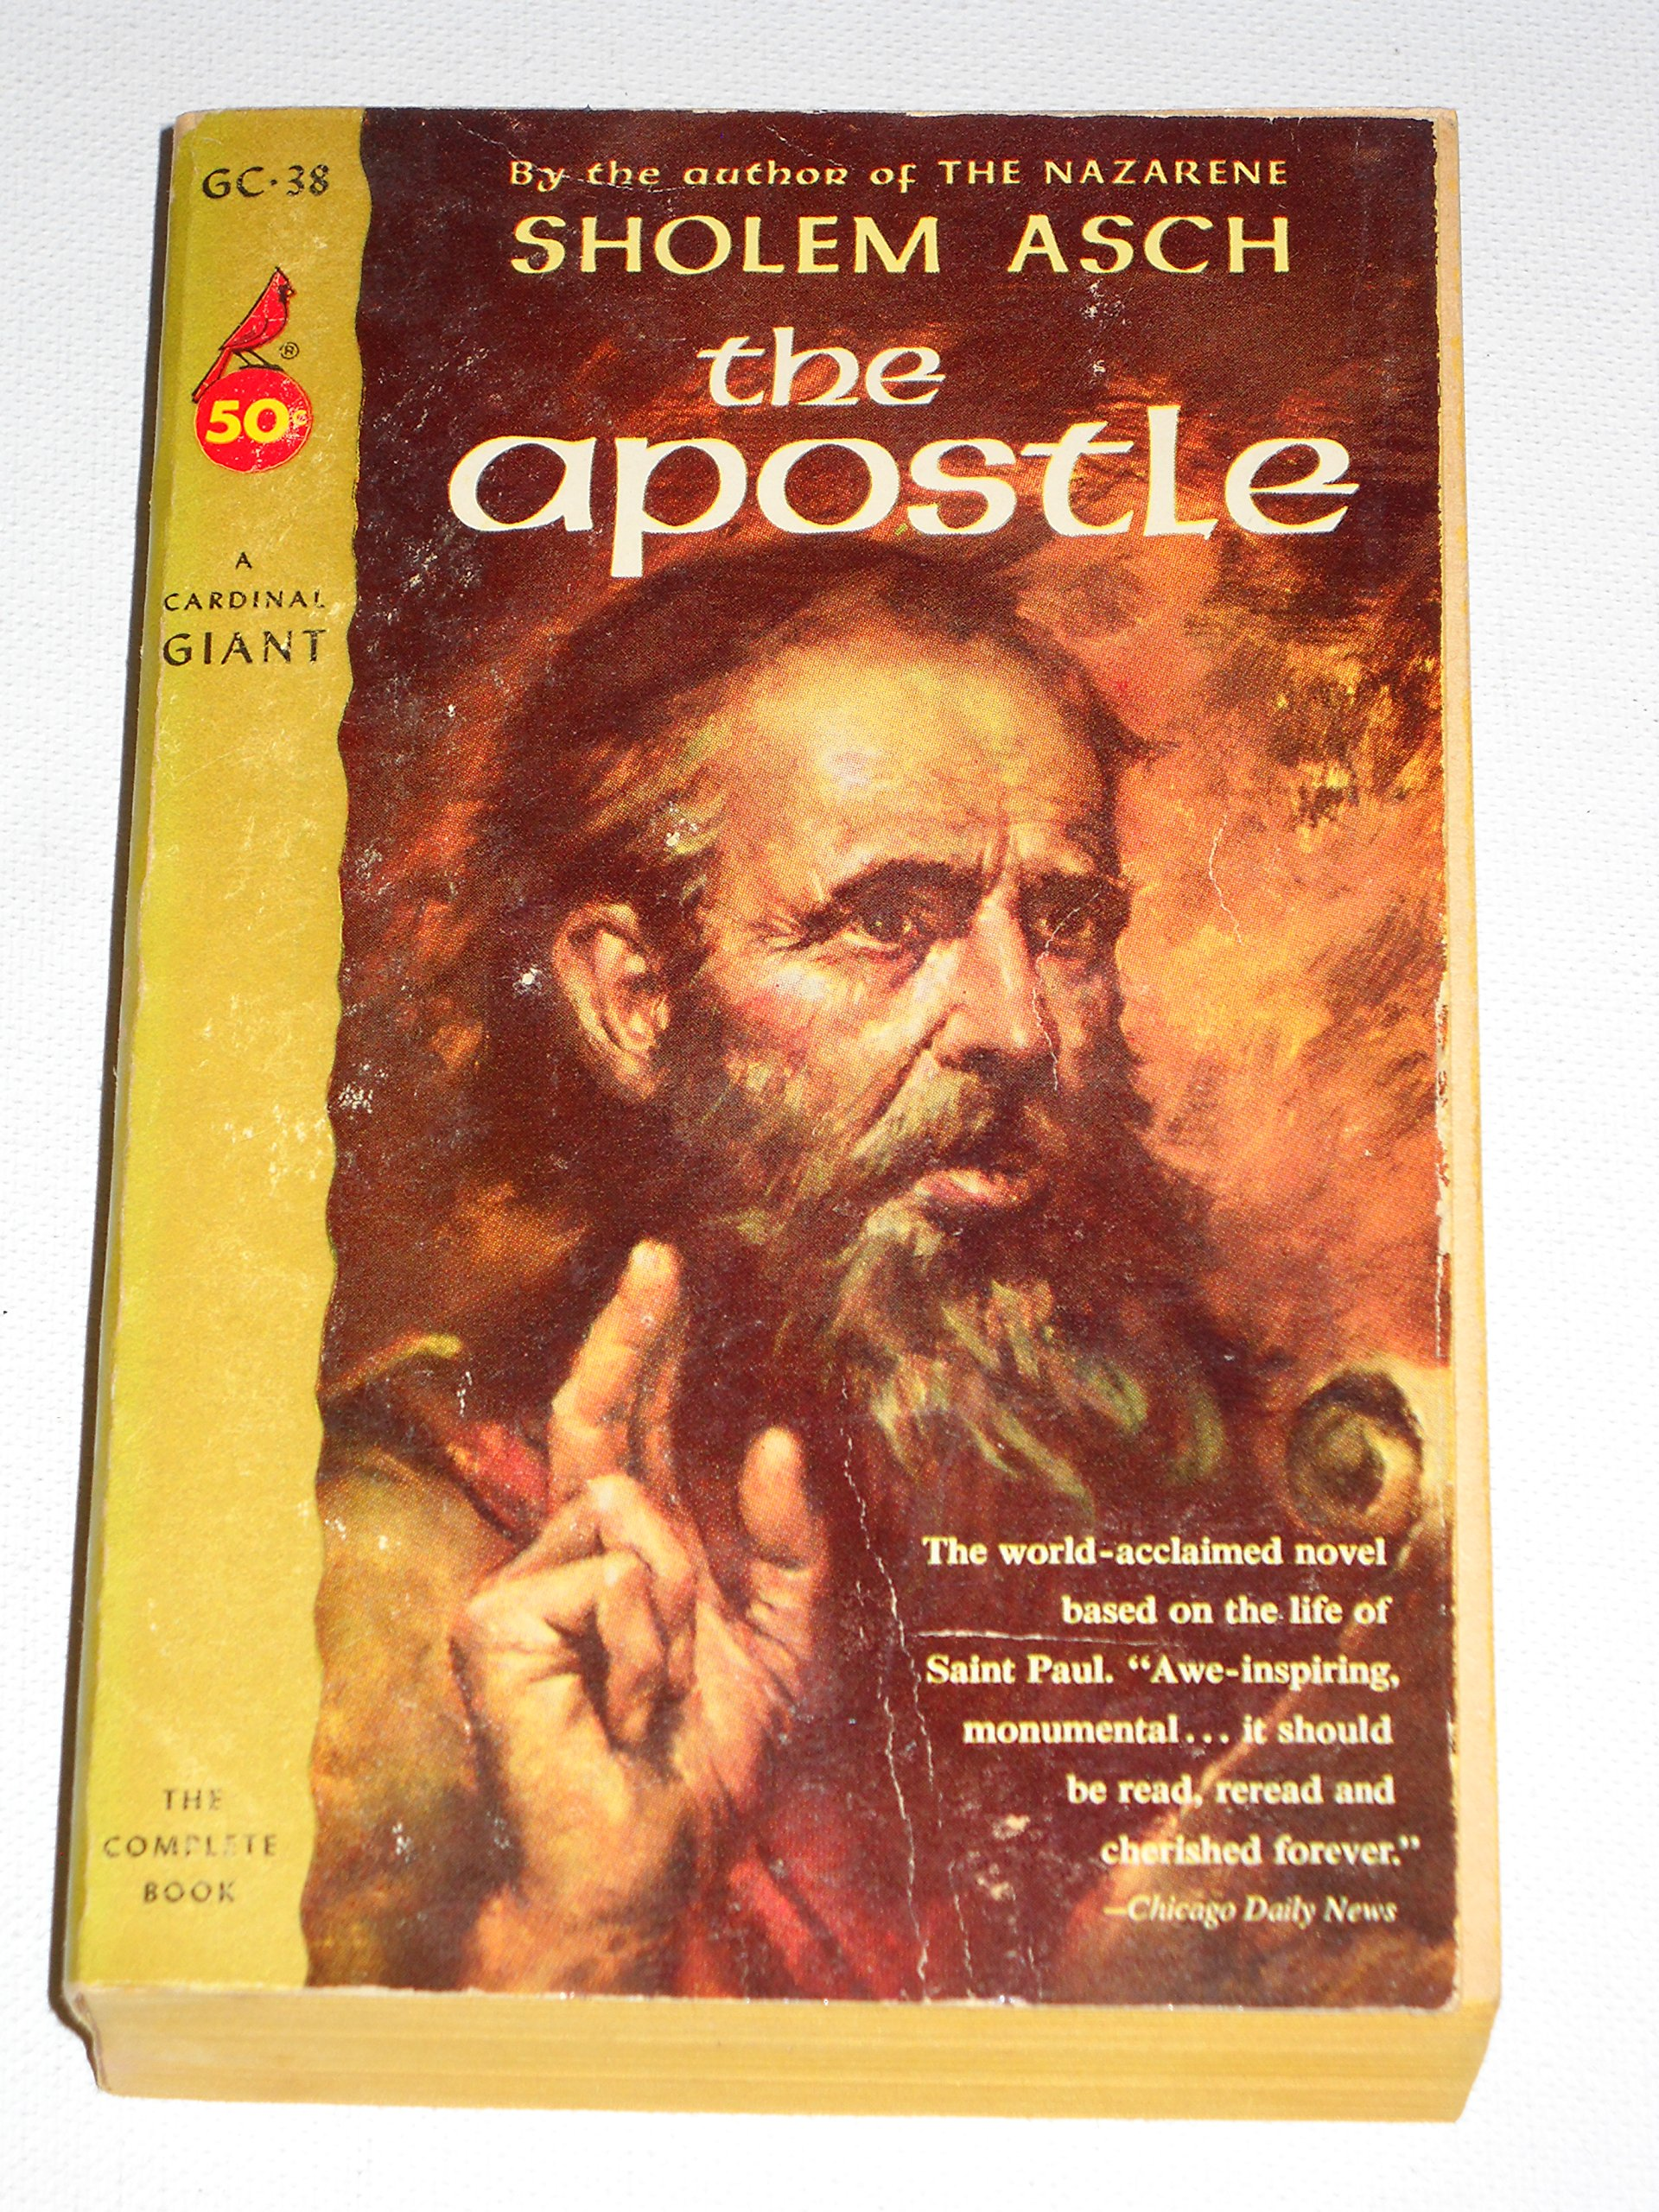 The apostle (A Cardinal giant, GC-38. Fiction), Asch, Sholem